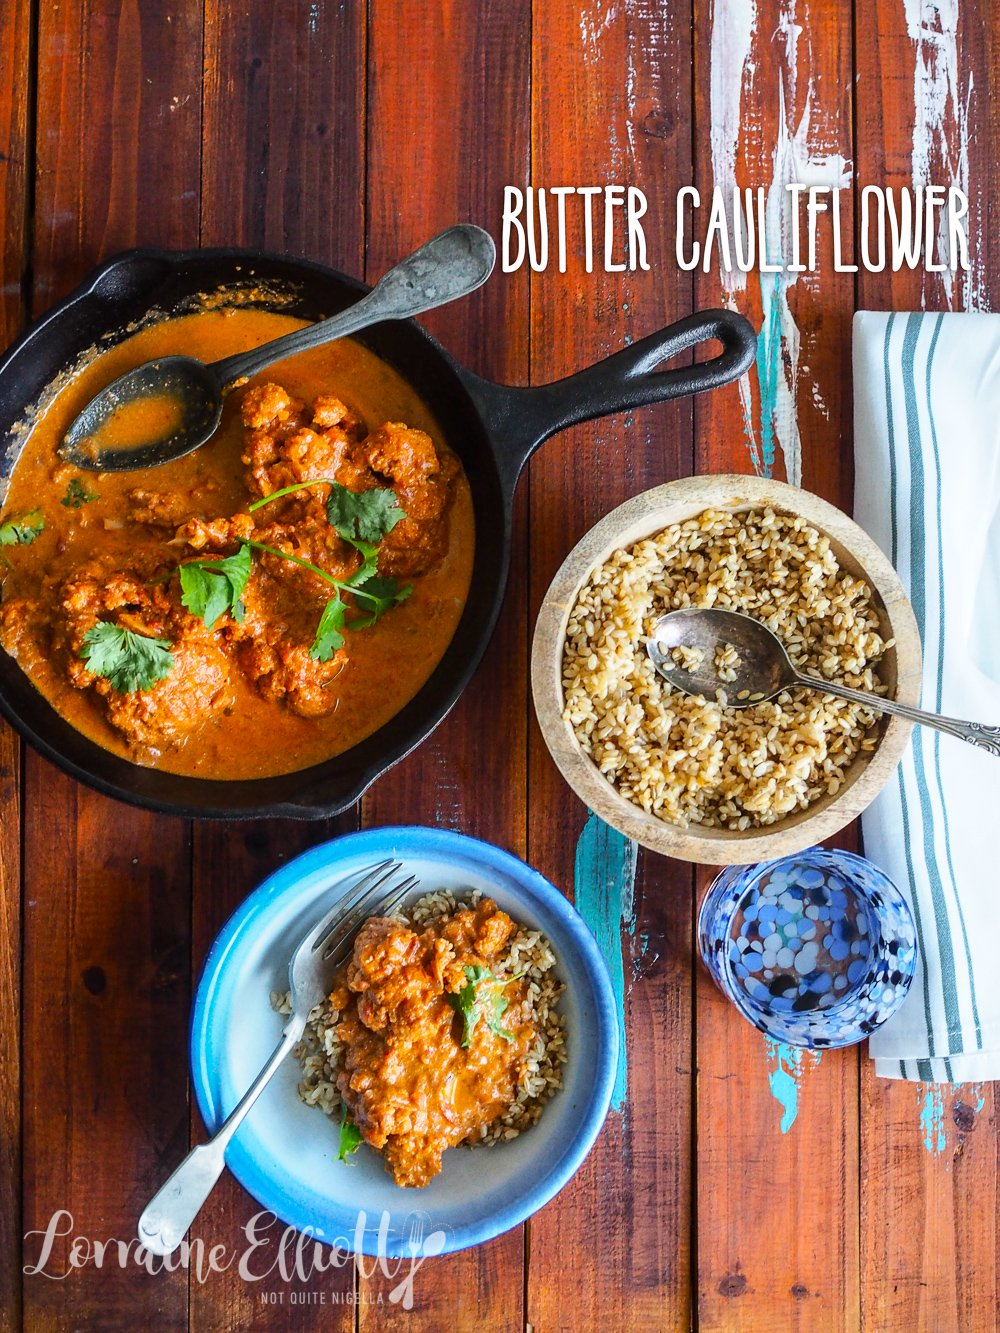 Butter Cauliflower recipe vegetarian curry